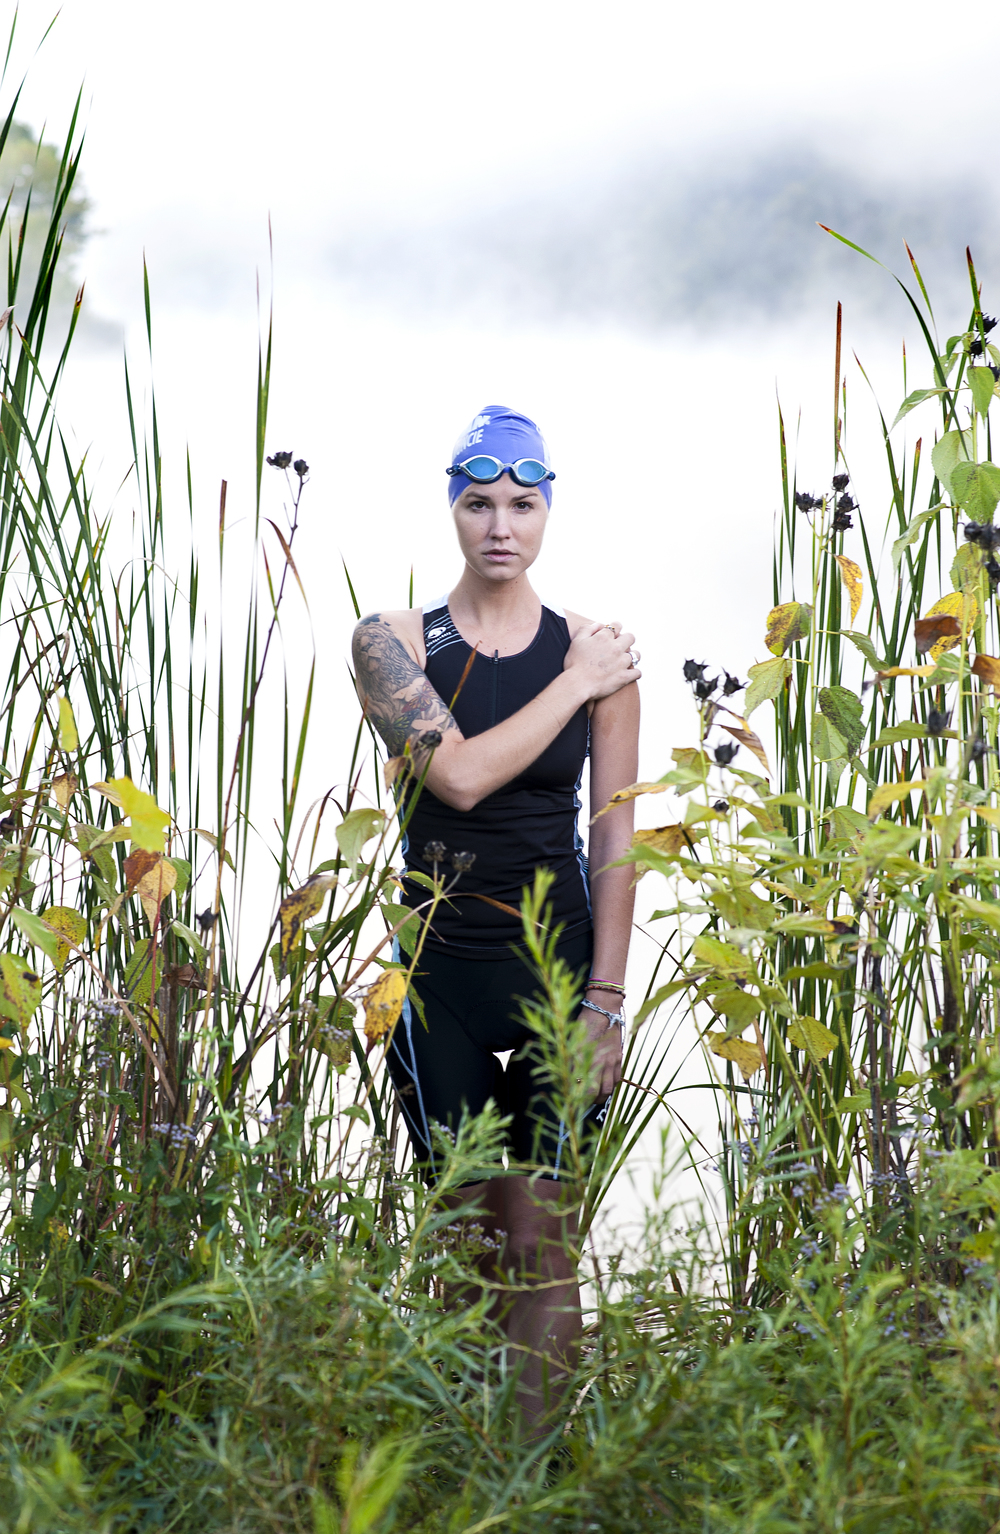 Triathlete Olivia Harlow poses for a portrait in the early morning fog of Strouds Run State Park where she regularly practices swimming in Athens, Ohio on September 15, 2015.